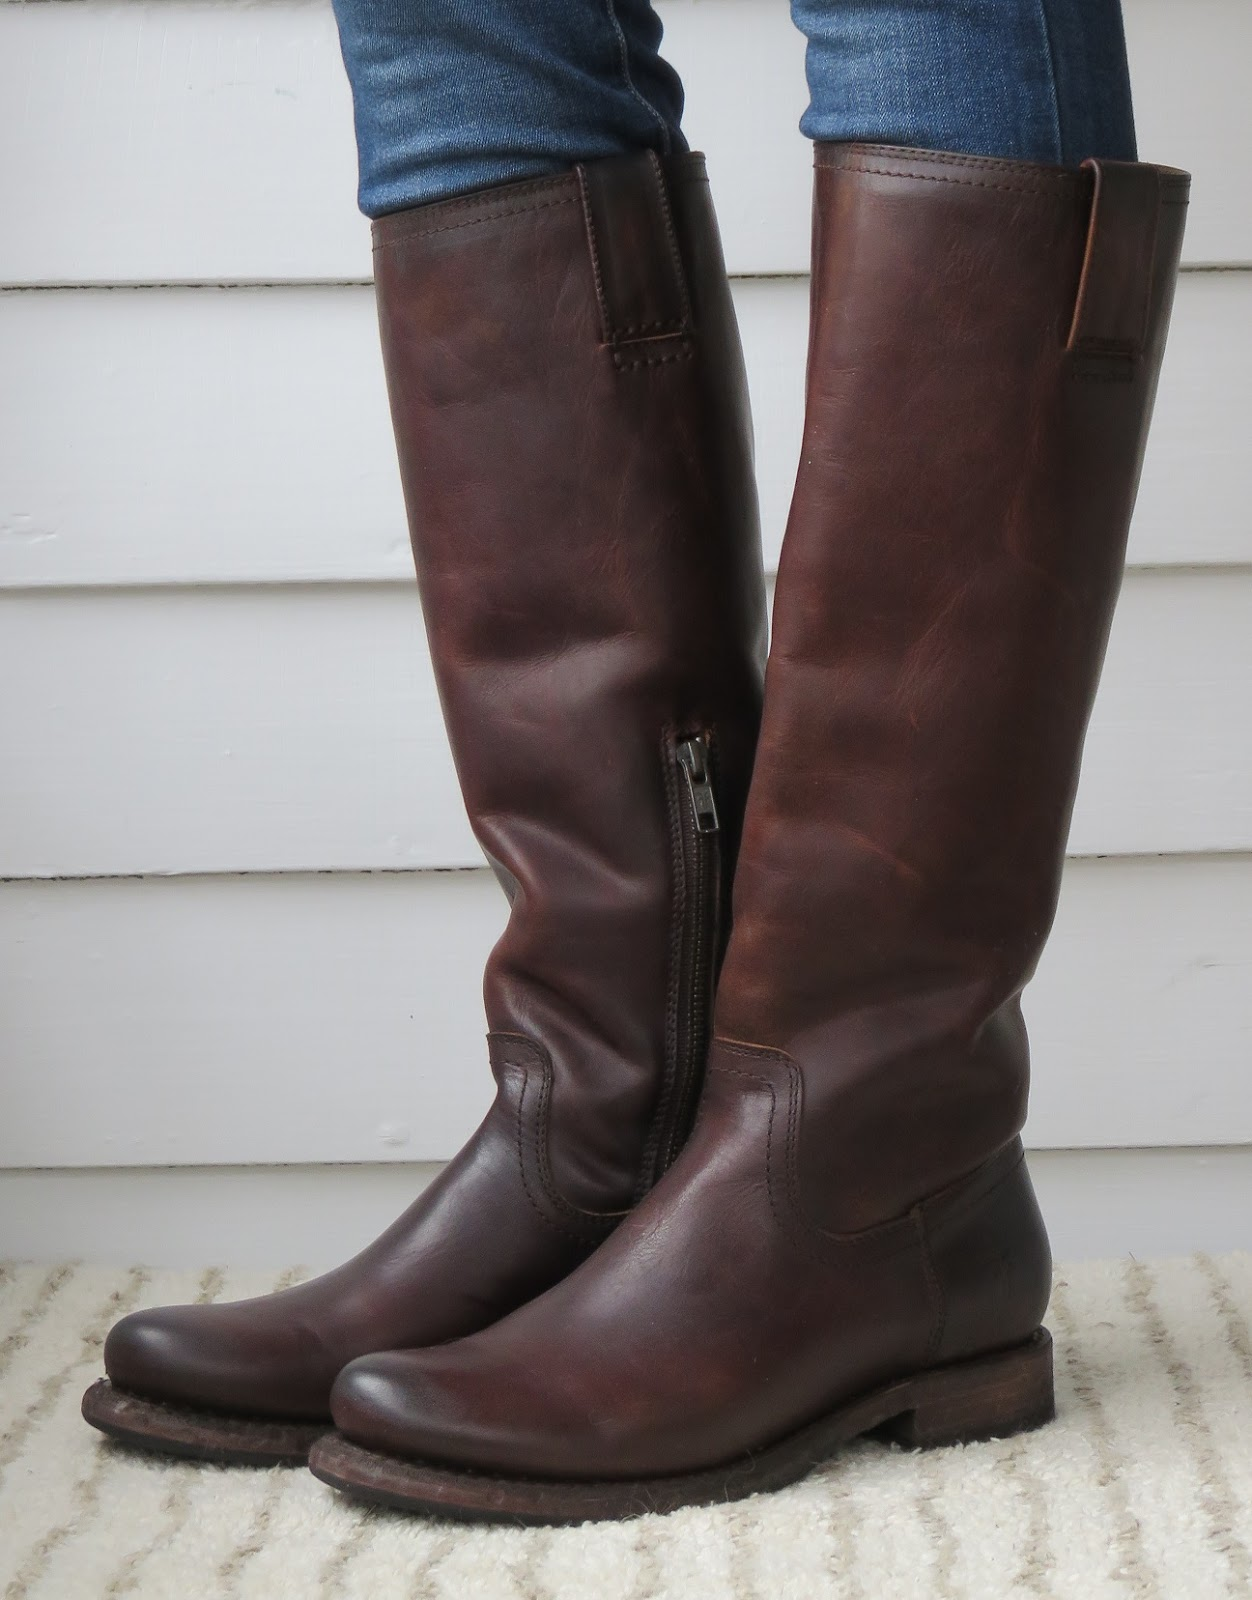 Howdy Slim! Riding Boots for Thin Calves: 2016